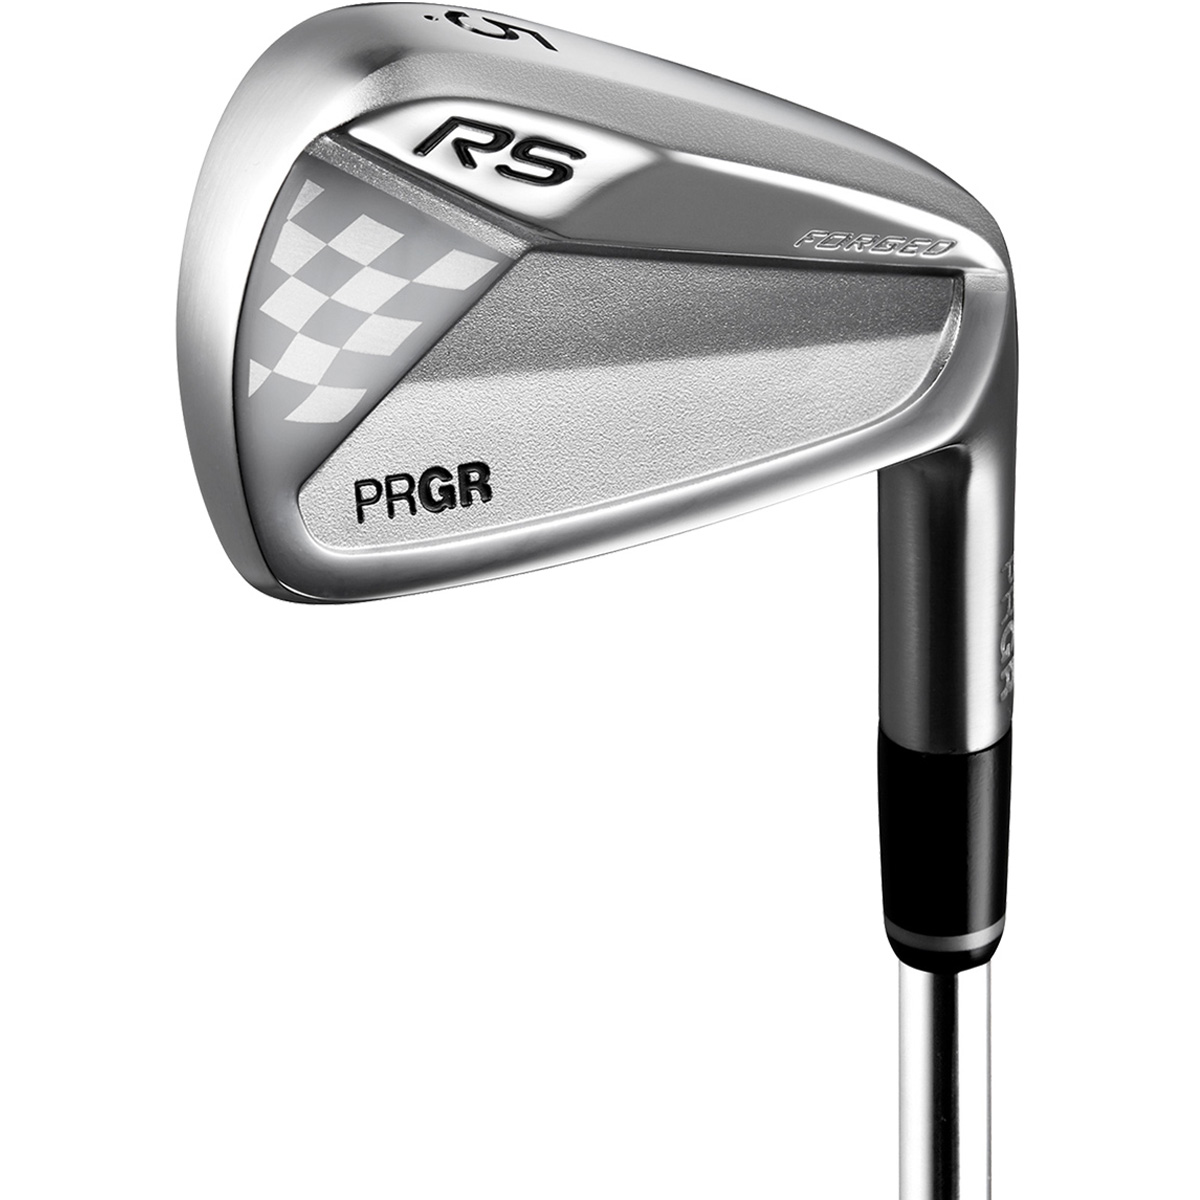 RS フォージドアイアン(6本セット) KBS TOUR 105